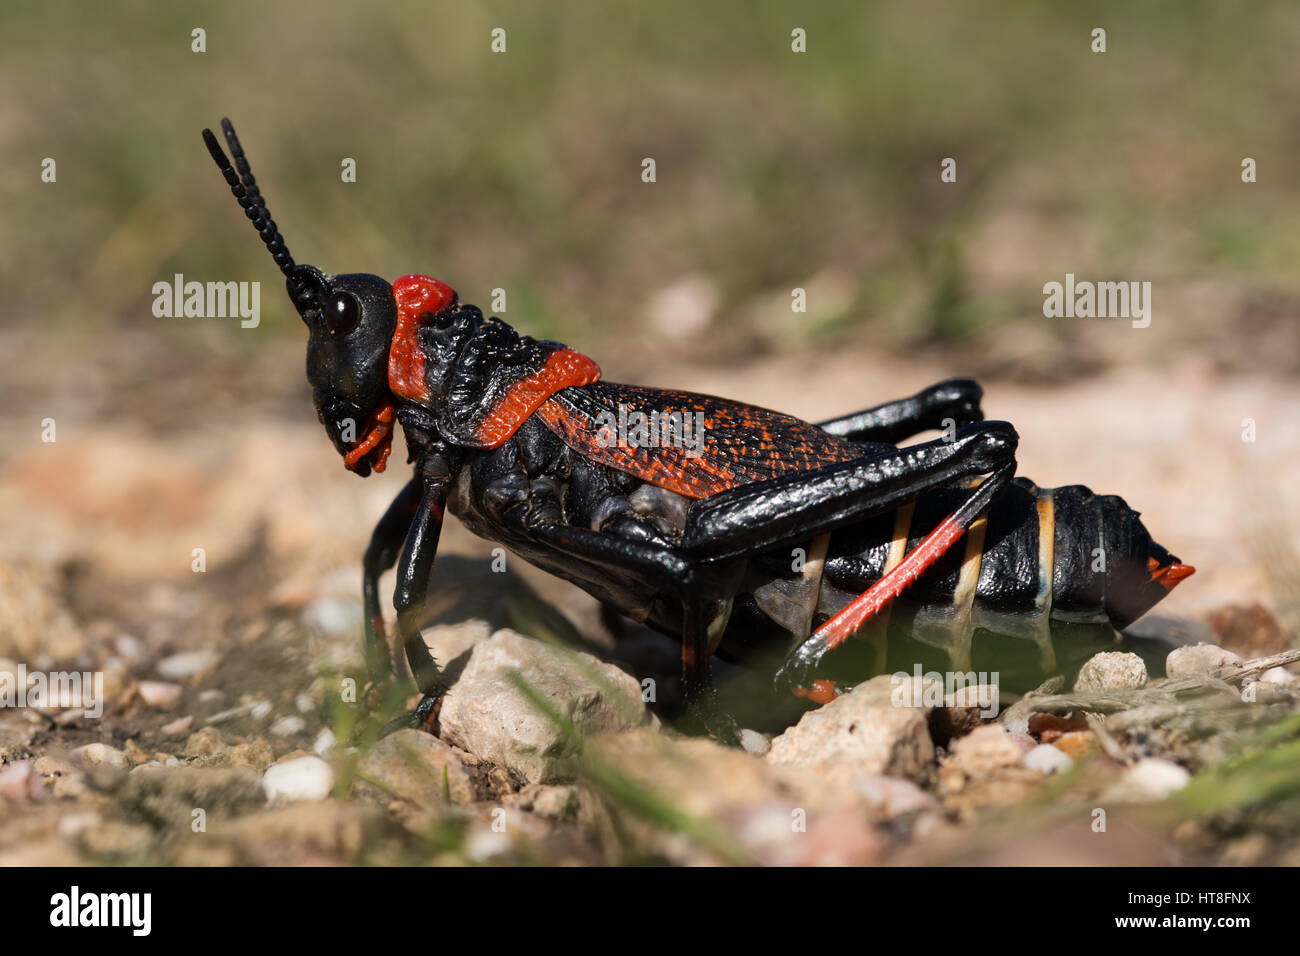 Gaudy grasshopper (Phymateus), South Africa - Stock Image